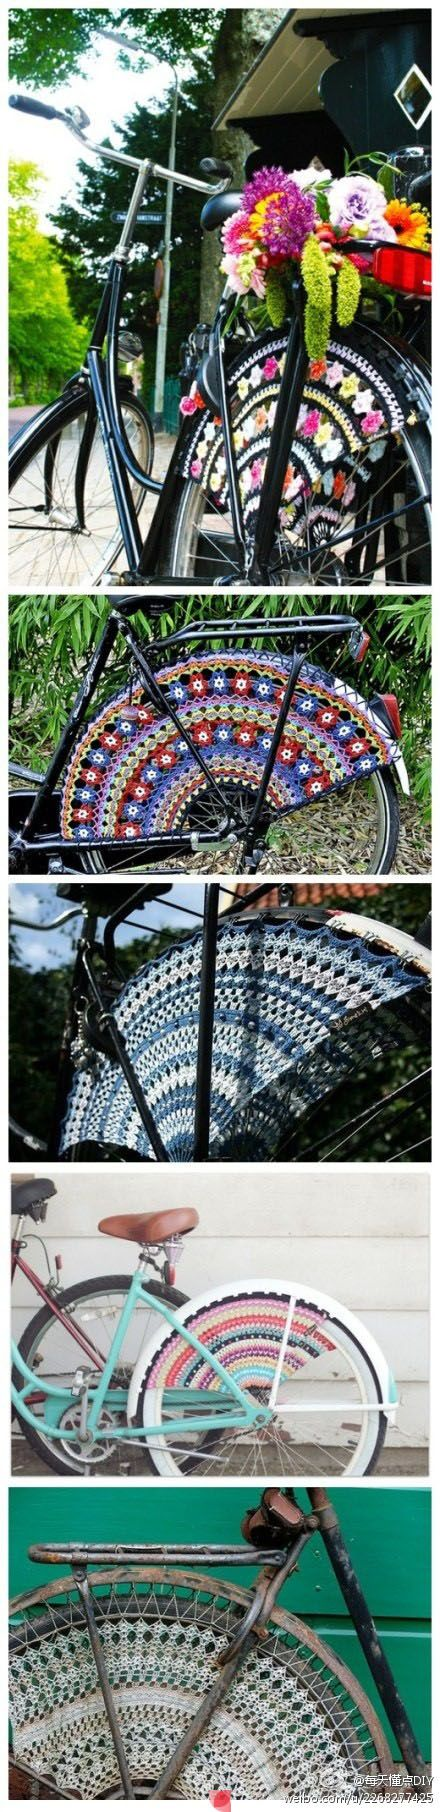 this would look so cute on my new bike!!